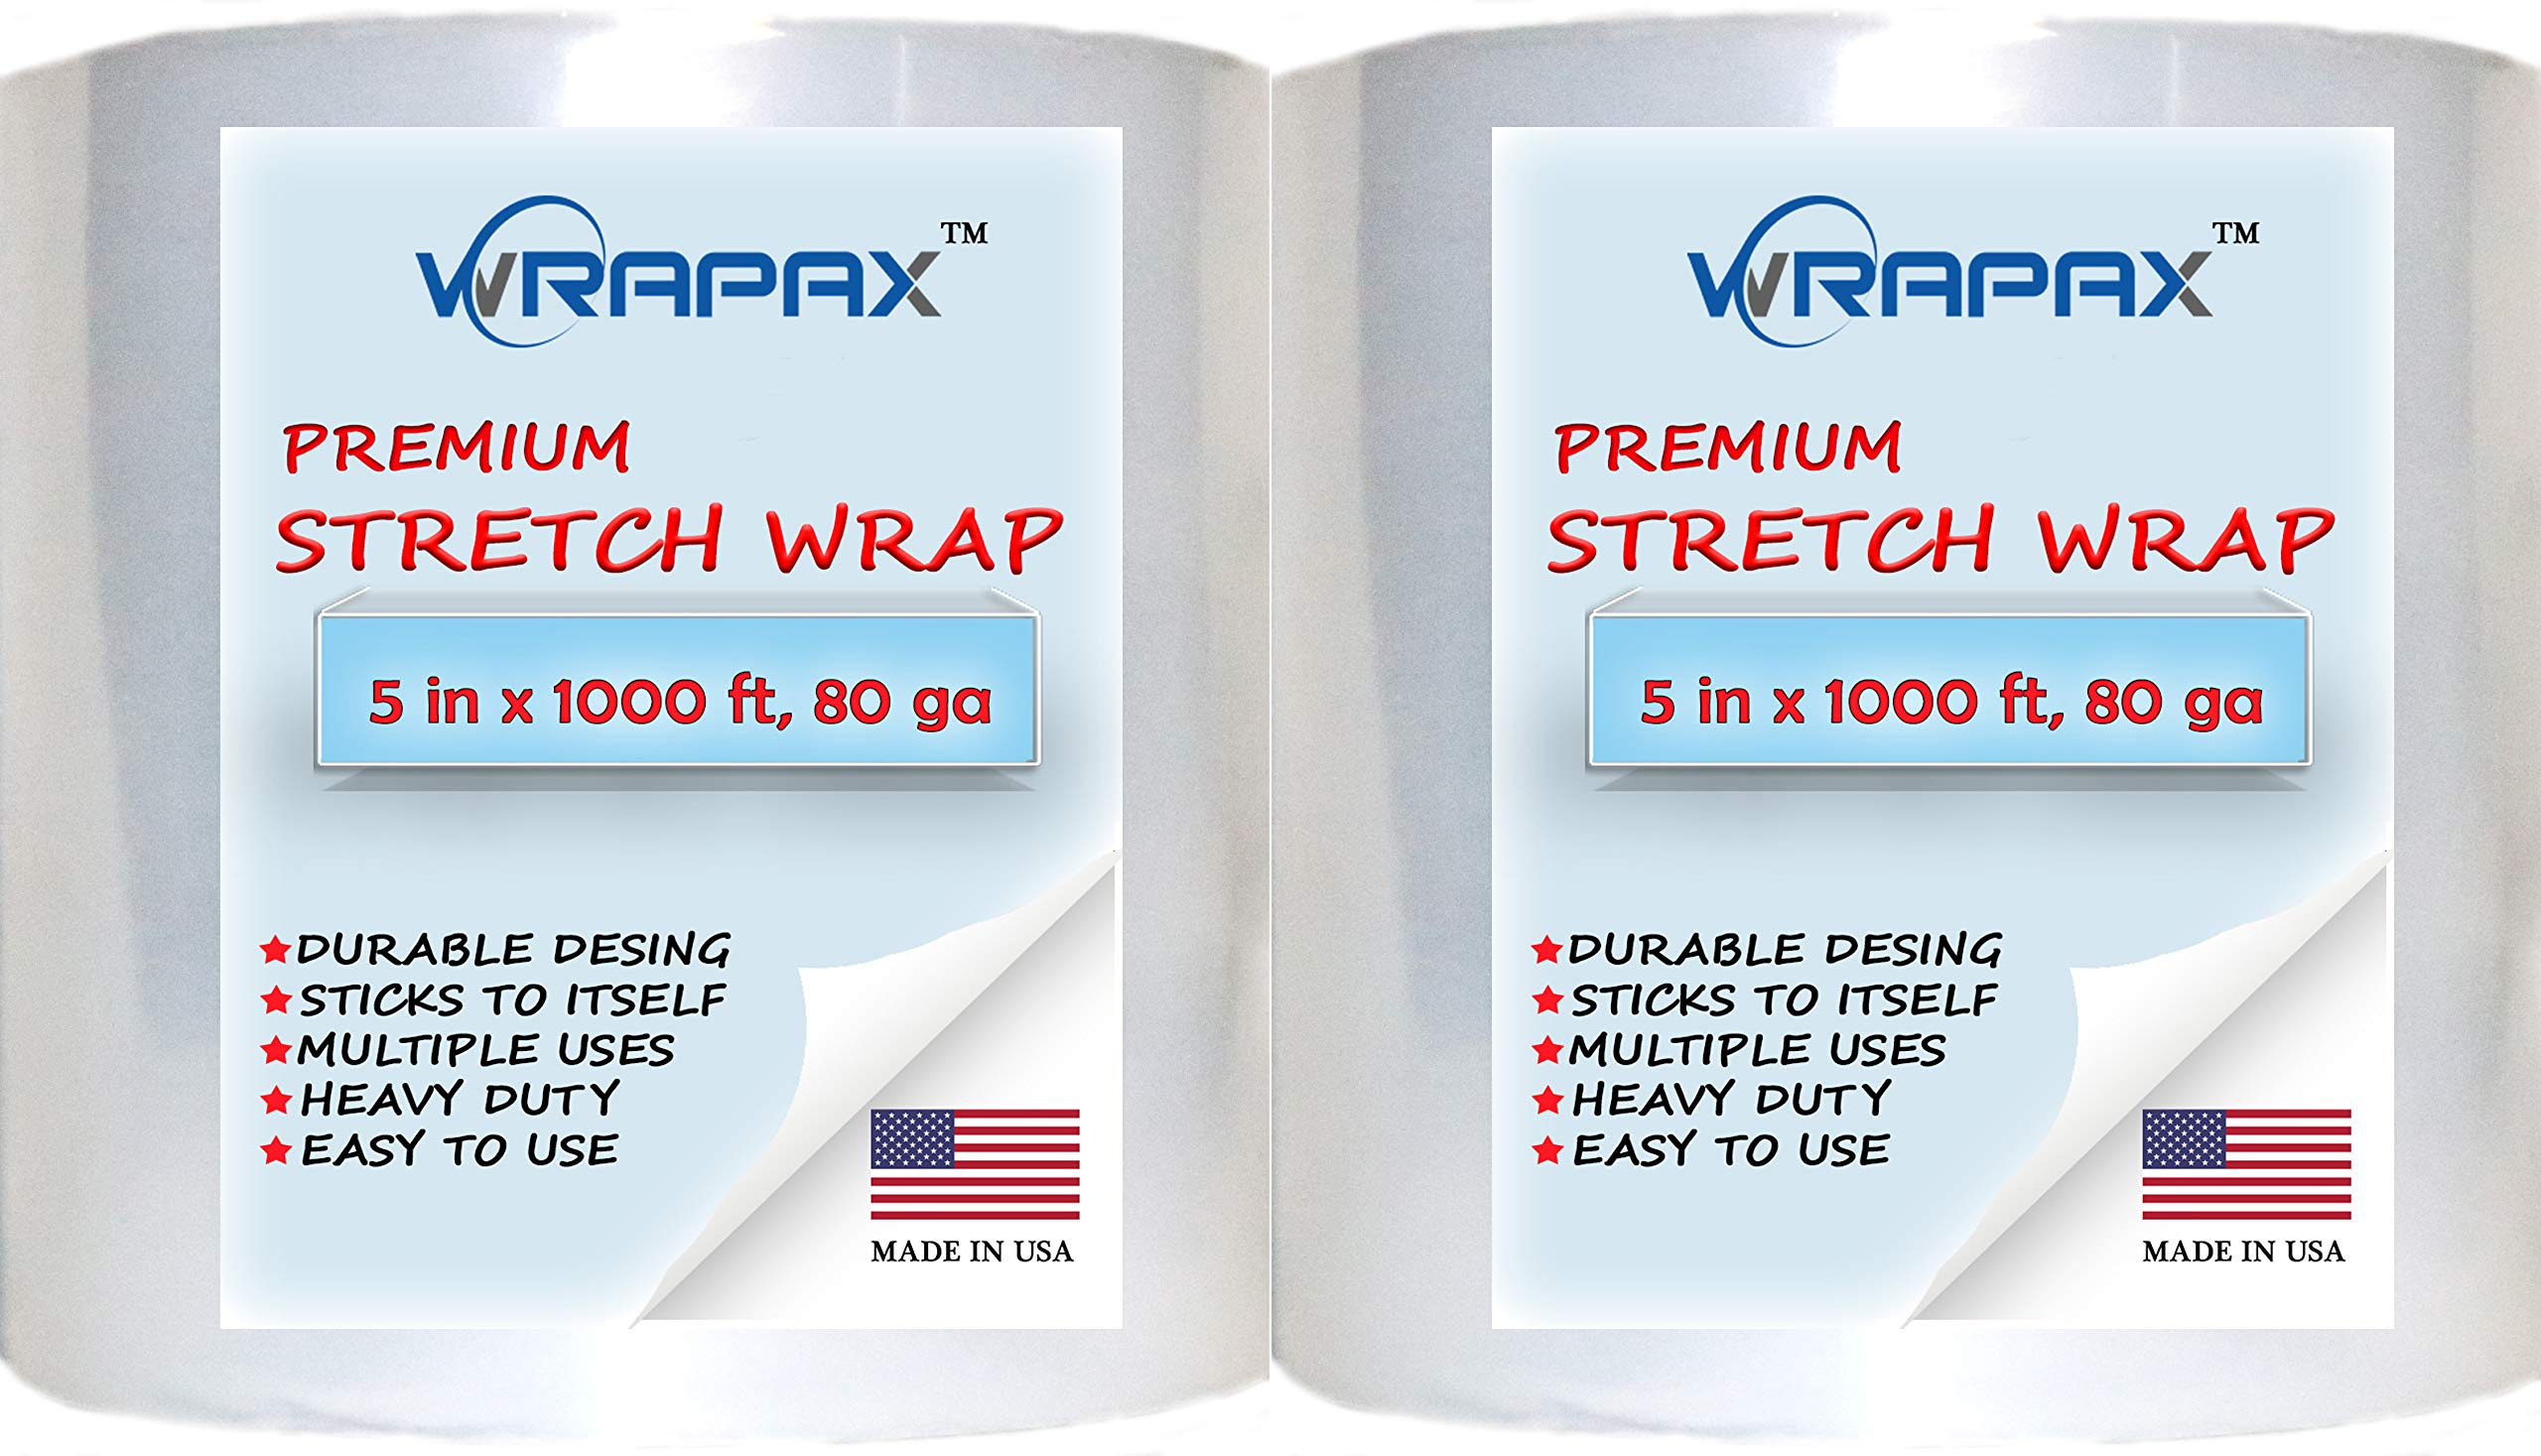 5'' x 1000' 3 Inch Core 80 Ga (20 Micron) Banding Plastic Stretch Wrap - Hand Stretch Film Roll - Quiet Release Shrink Wrap - Shipping and Moving Supplies (2 pack)